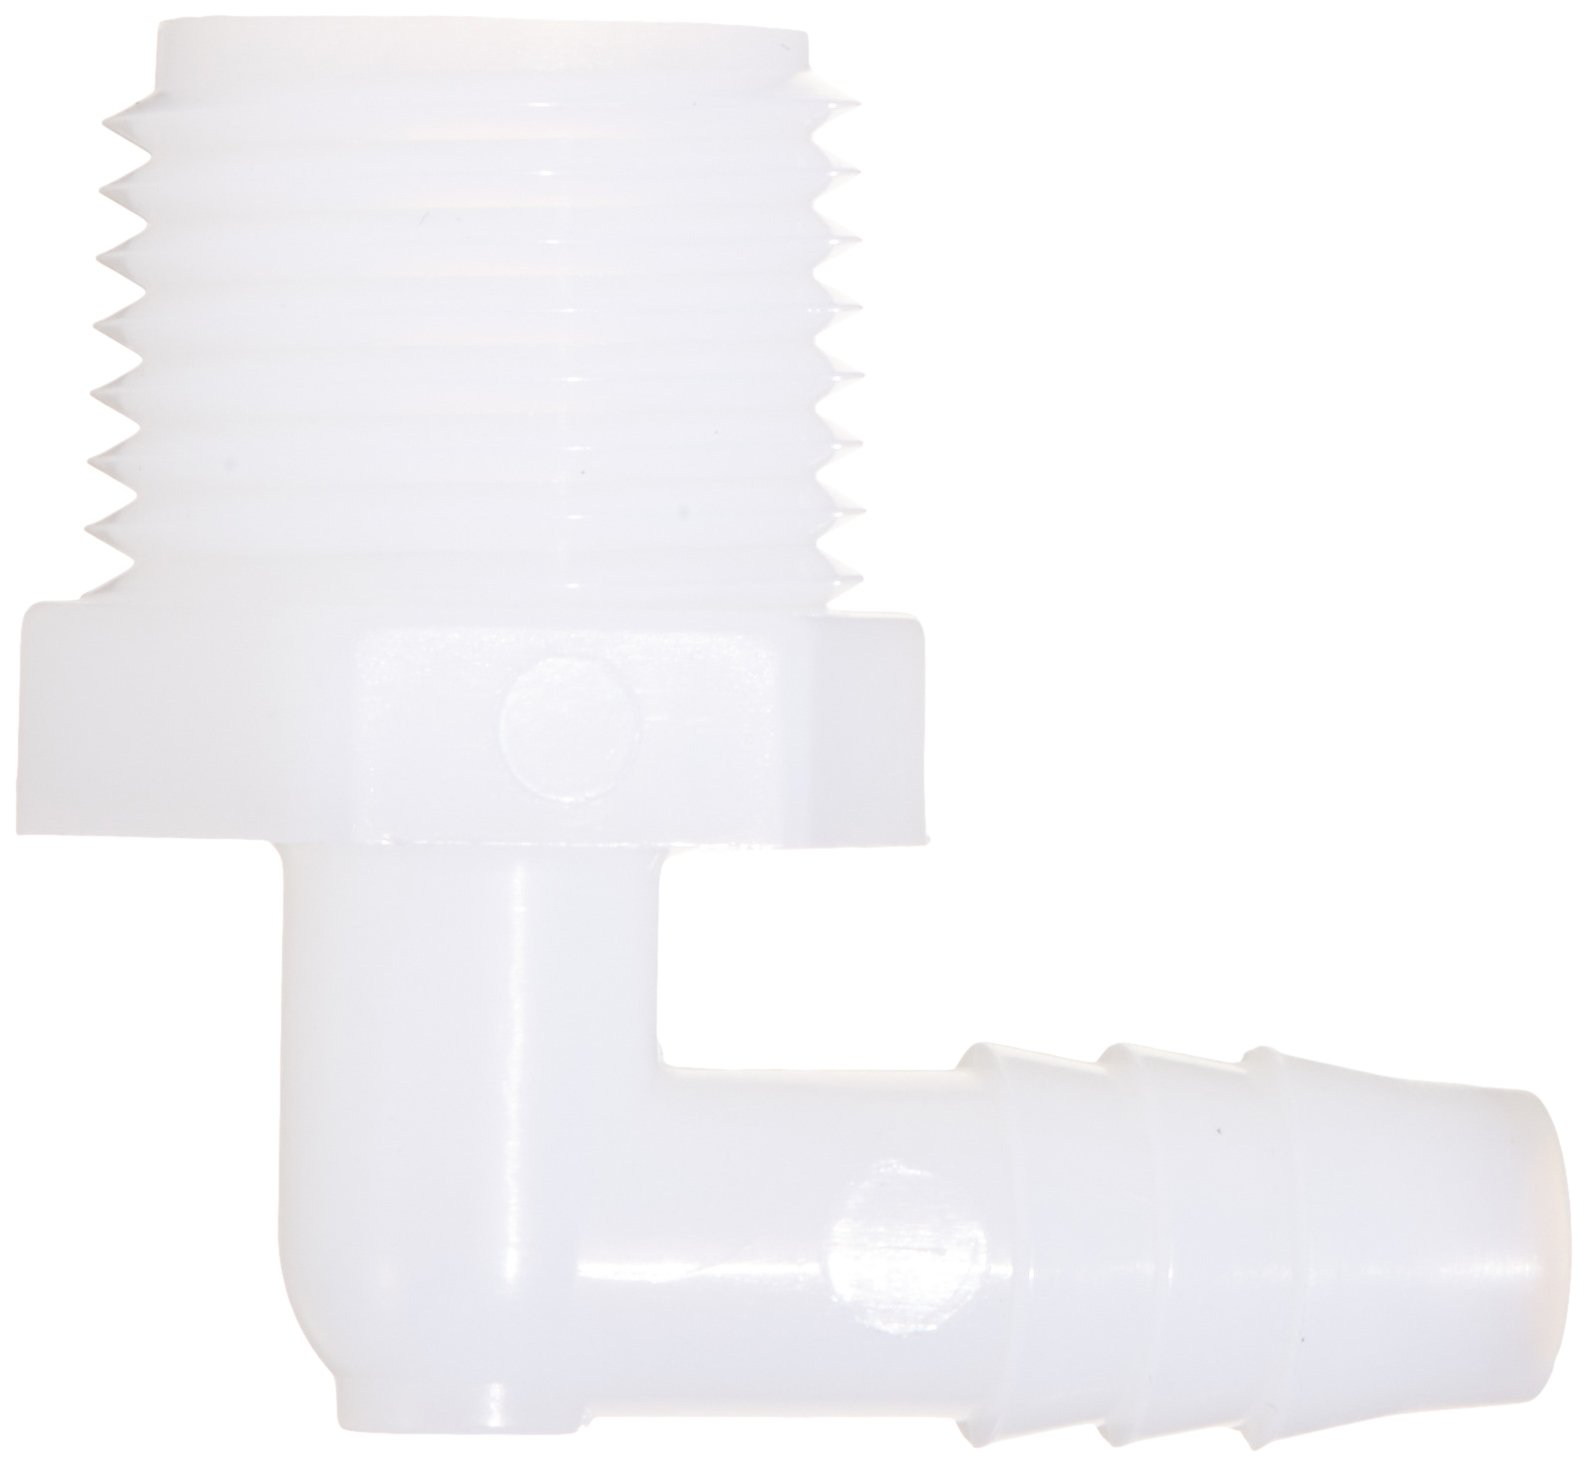 Parker Hannifin 329HB-6-8N-pk10 Par-Barb Male Elbow Fitting, Nylon, 90 Degree Angle, 3/8'' Hose Barb x 1/2'' Male NPT, White (Pack of 10) by Parker Hannifin (Image #2)